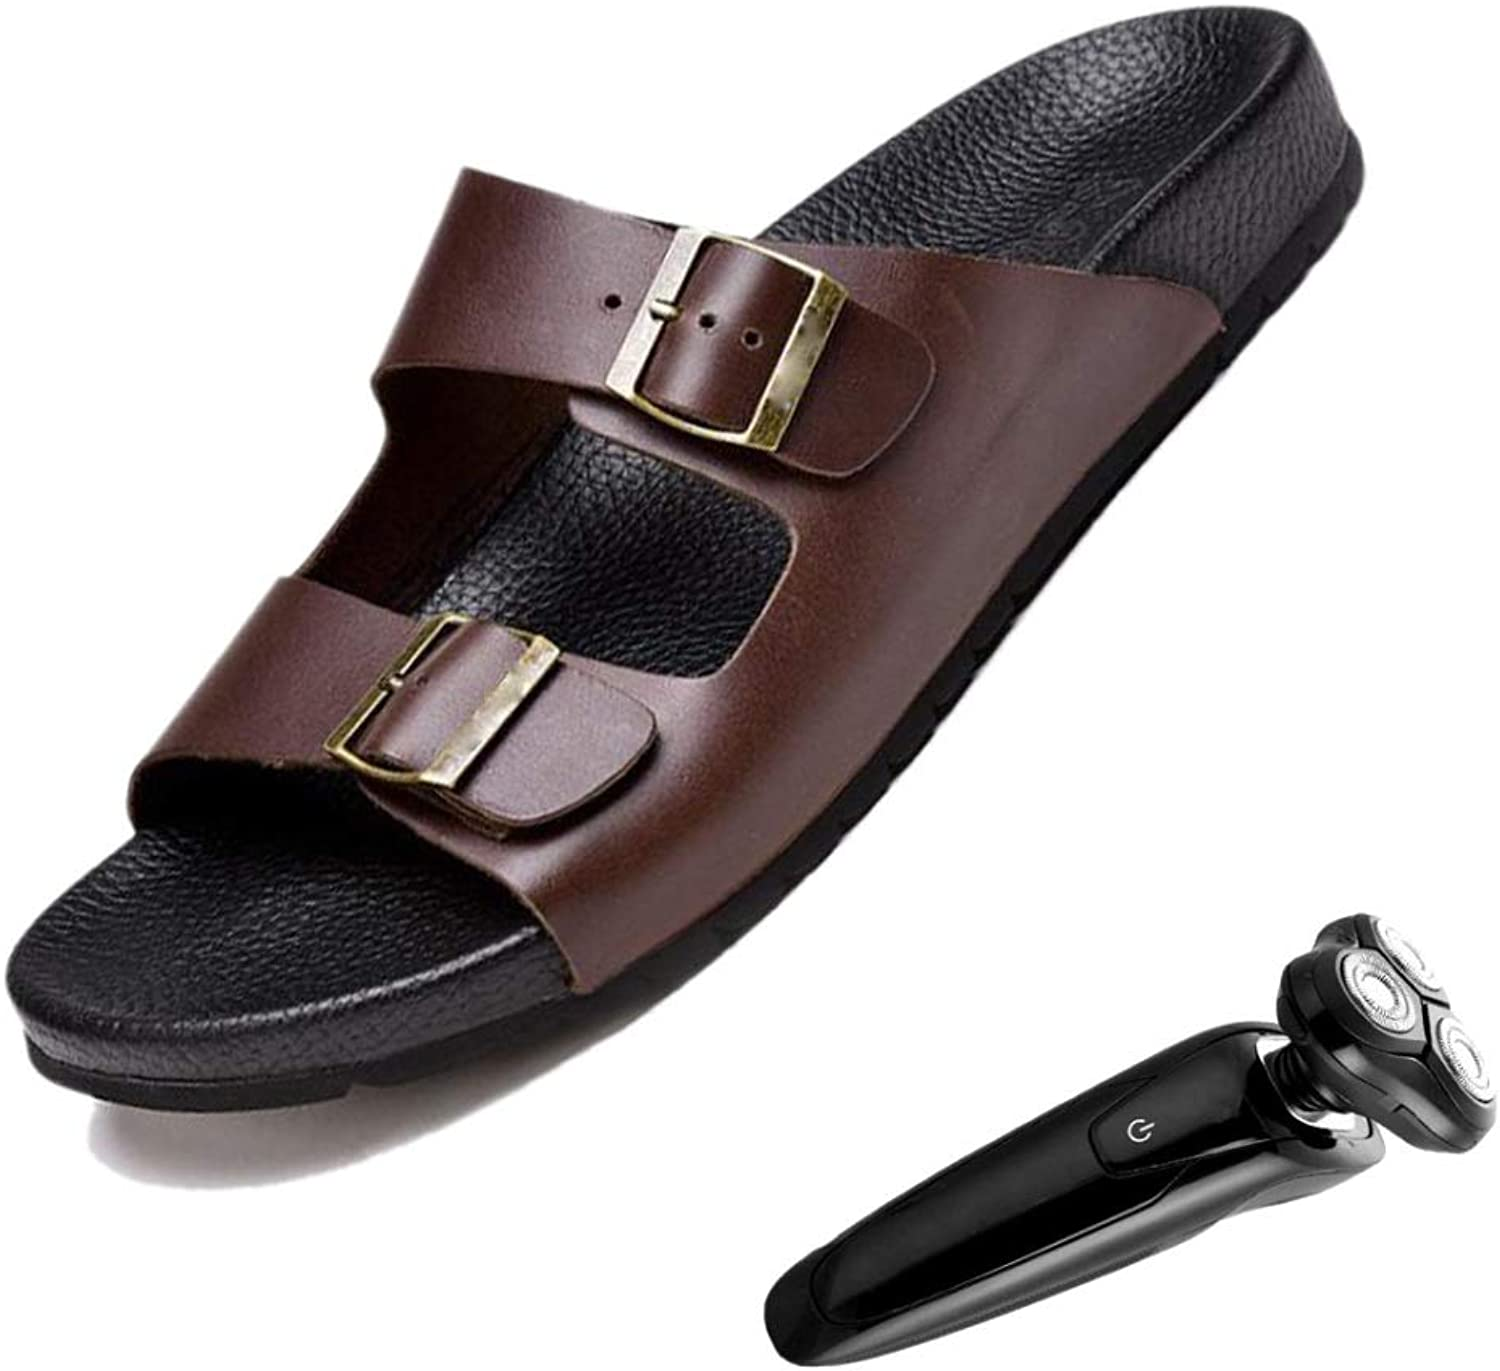 Summer Buckle Men's Leather Sandals and Slippers Casual Flip Beach shoes Brown Black Flat Soft Leather